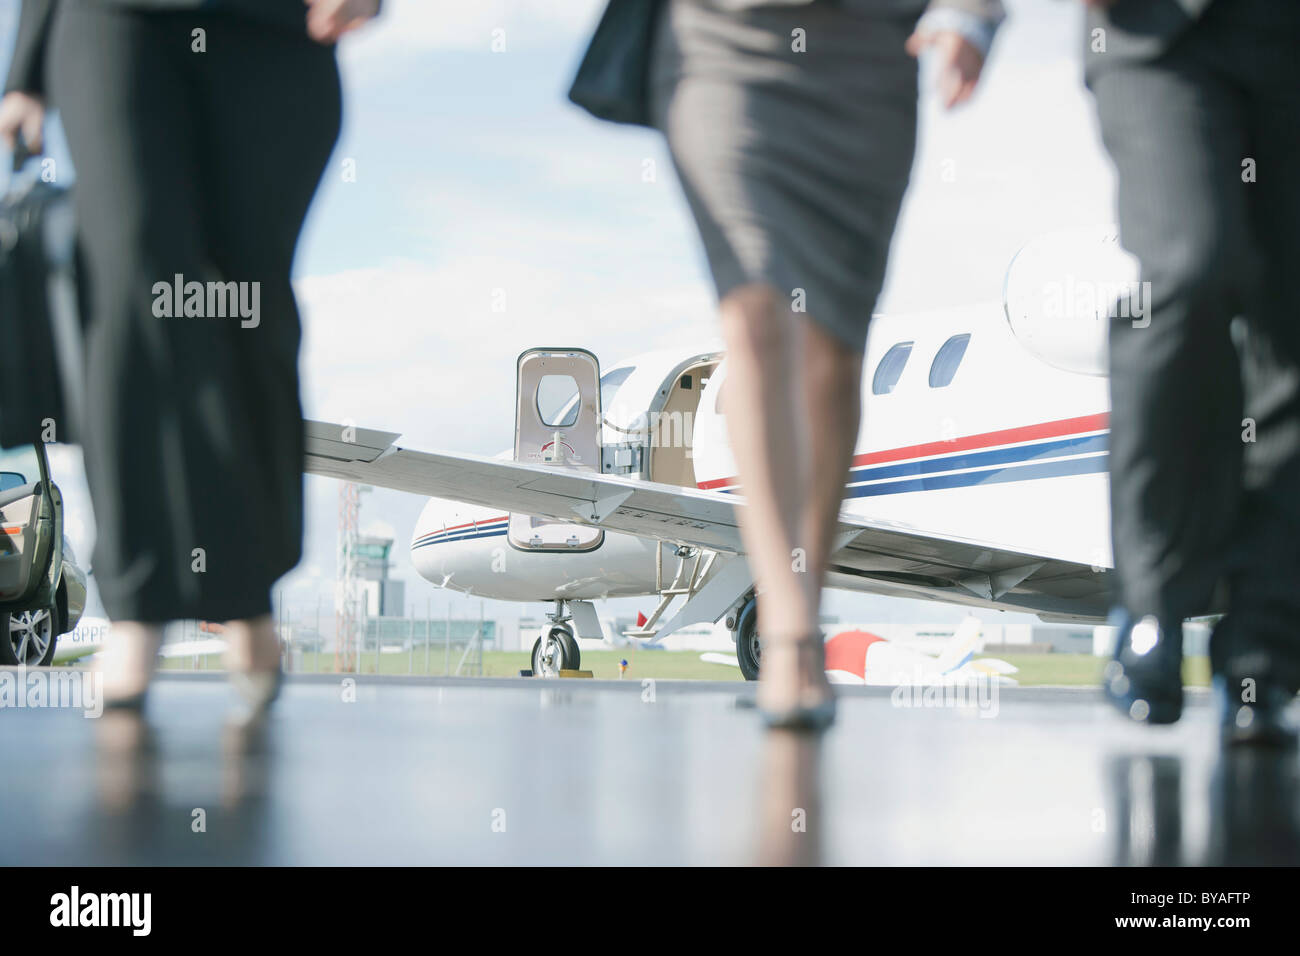 Business Executives on the move - Stock Image